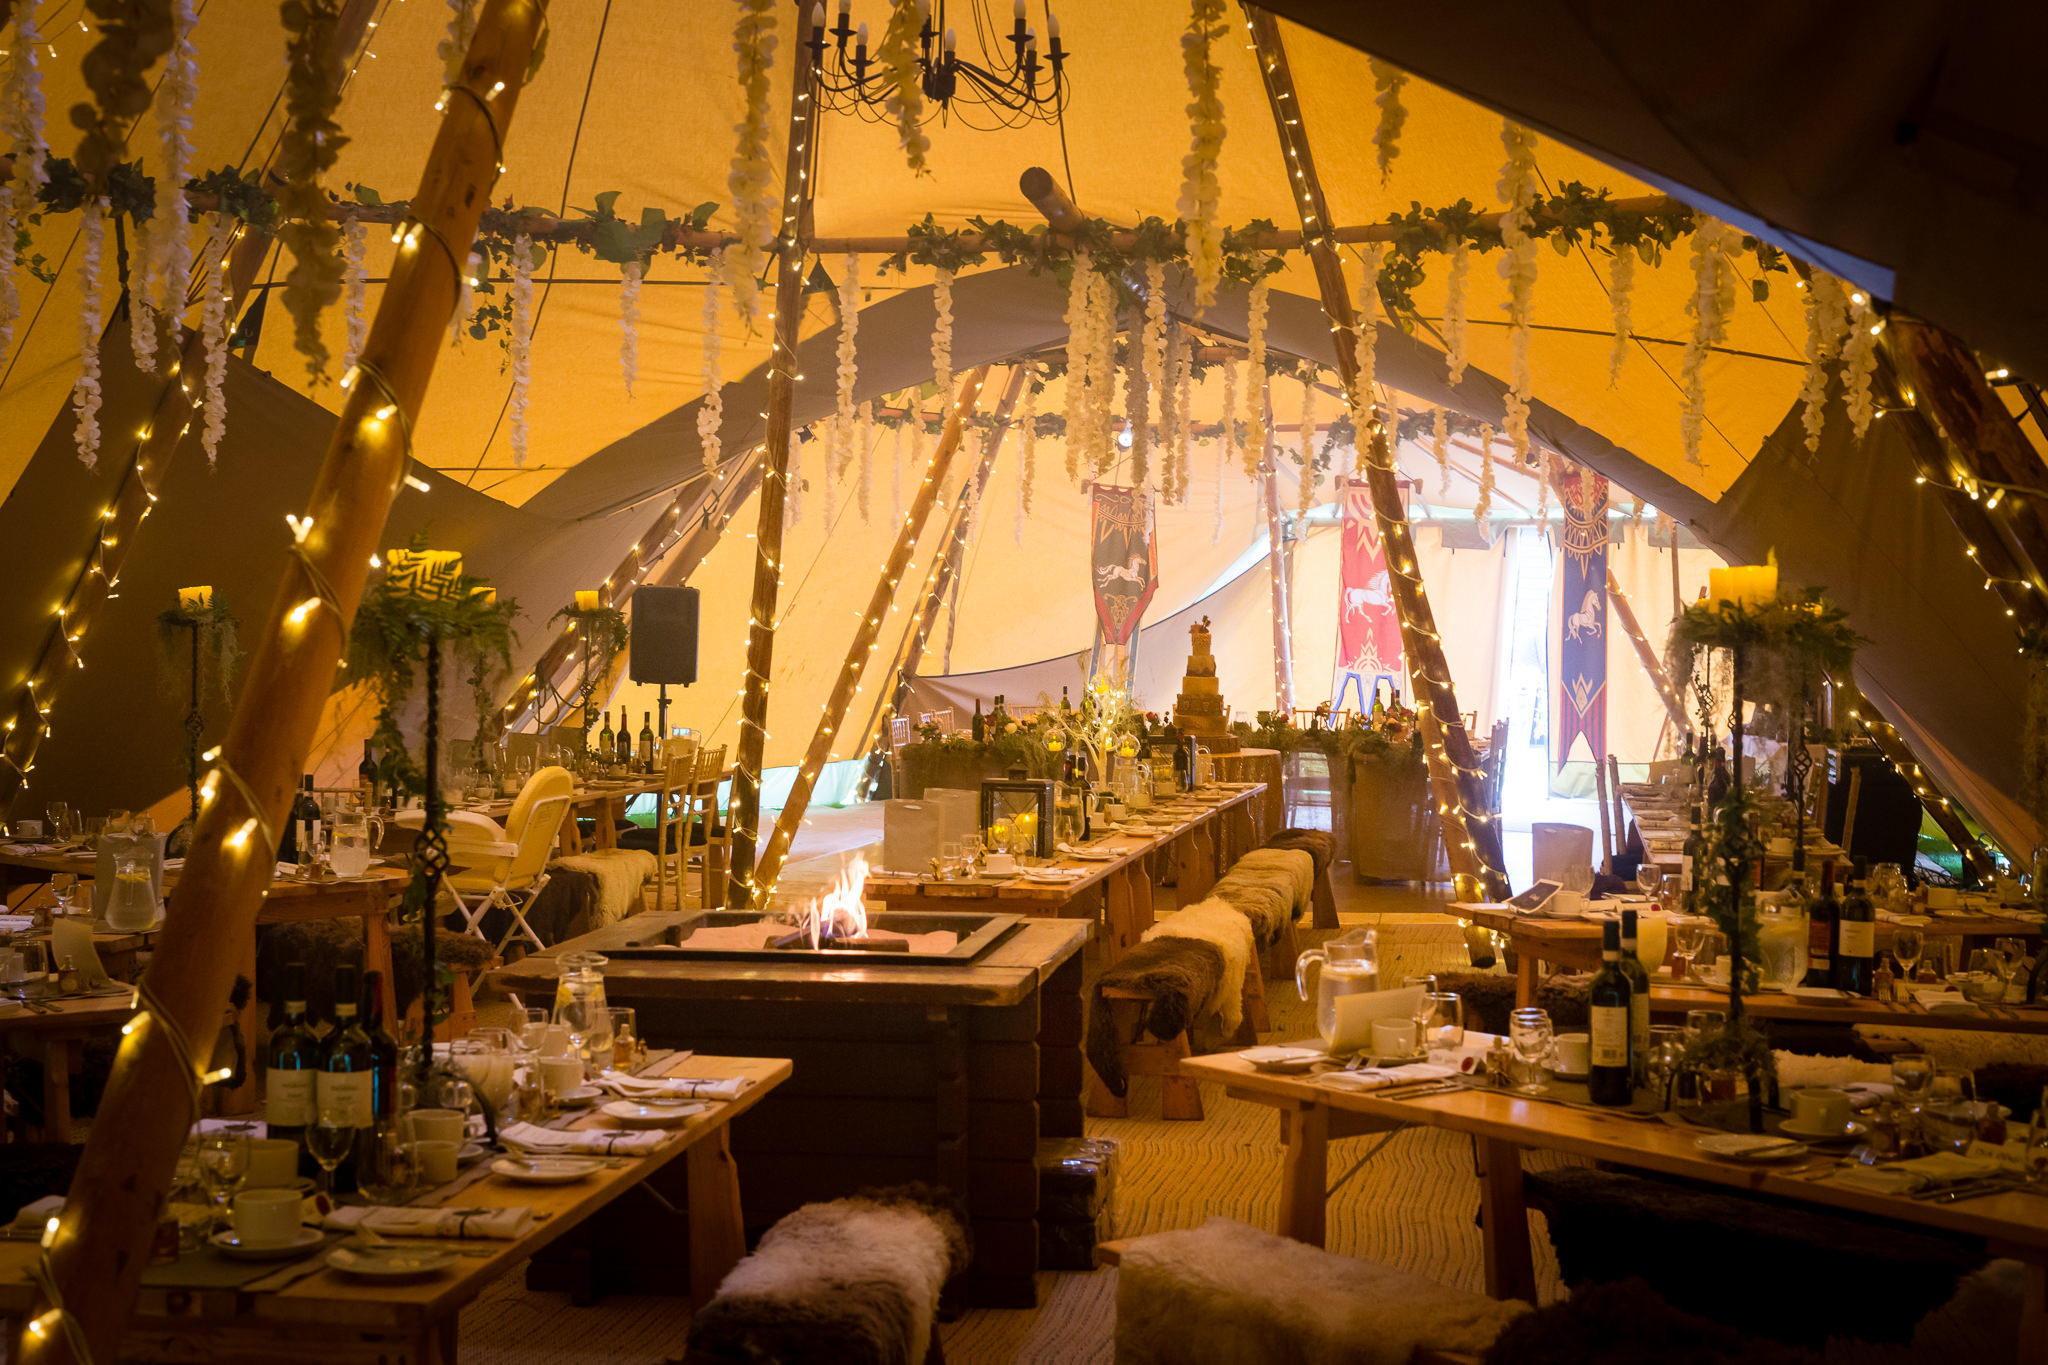 ATP decorated for a Lord of the Rings and Game of Thrones themed wedding